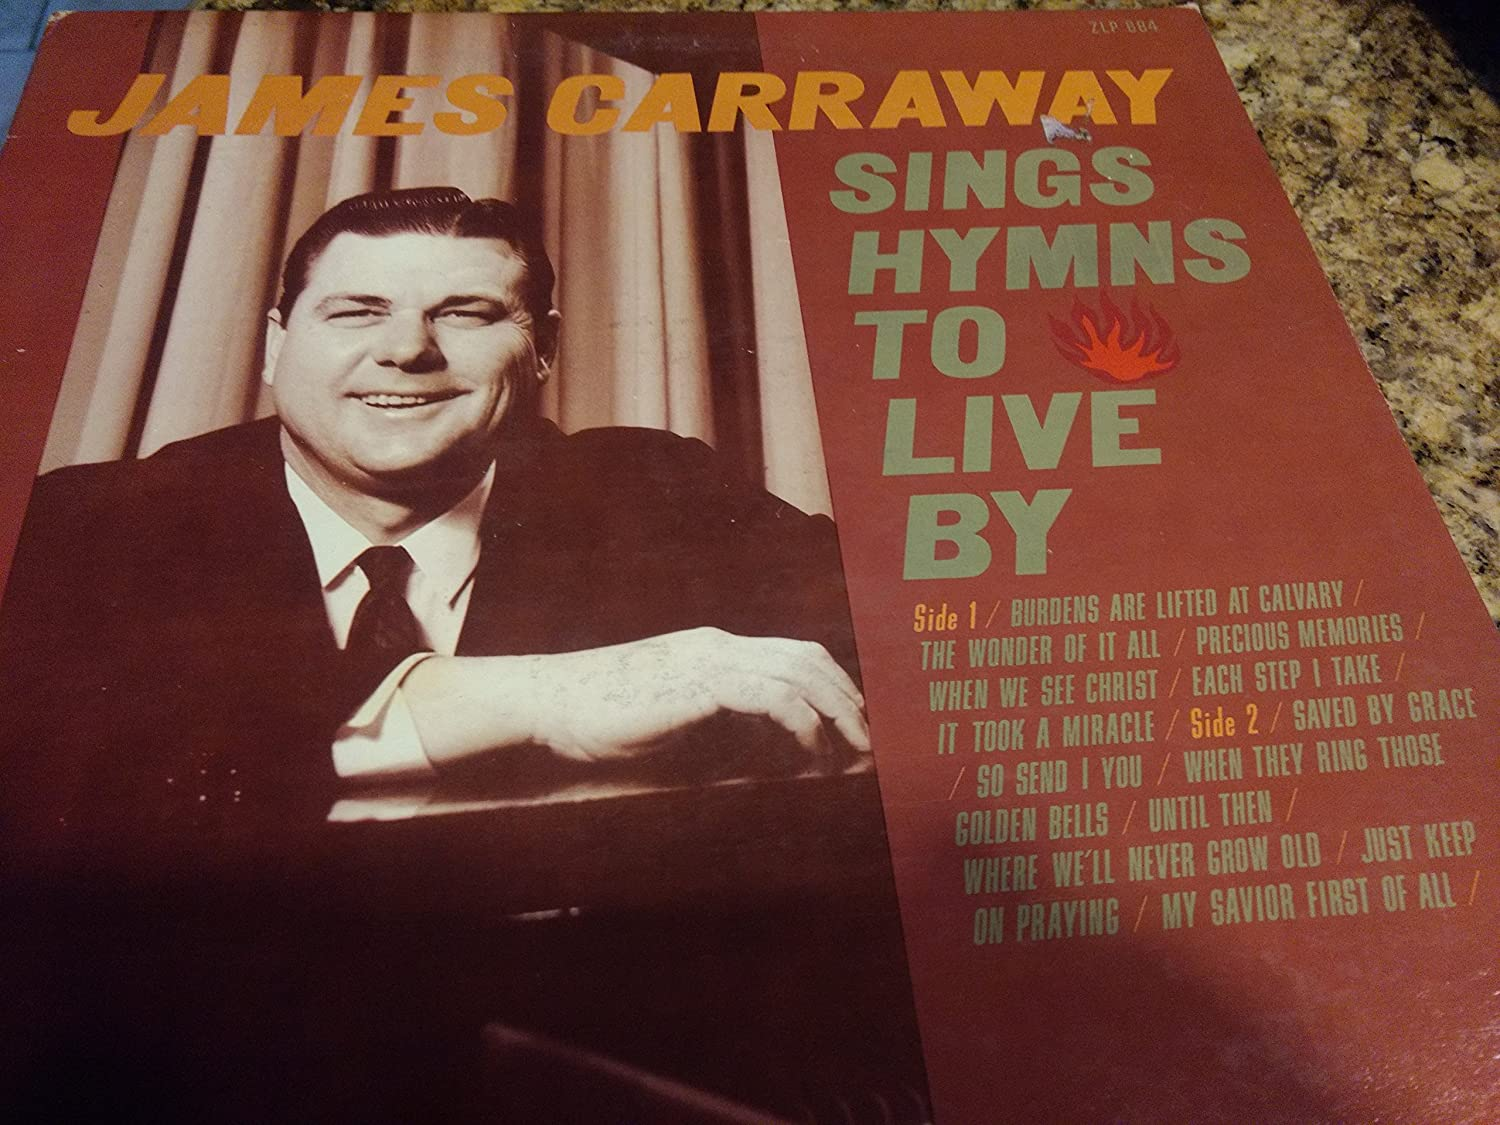 James Carraway - James Carraway Sings Hymns to Live By